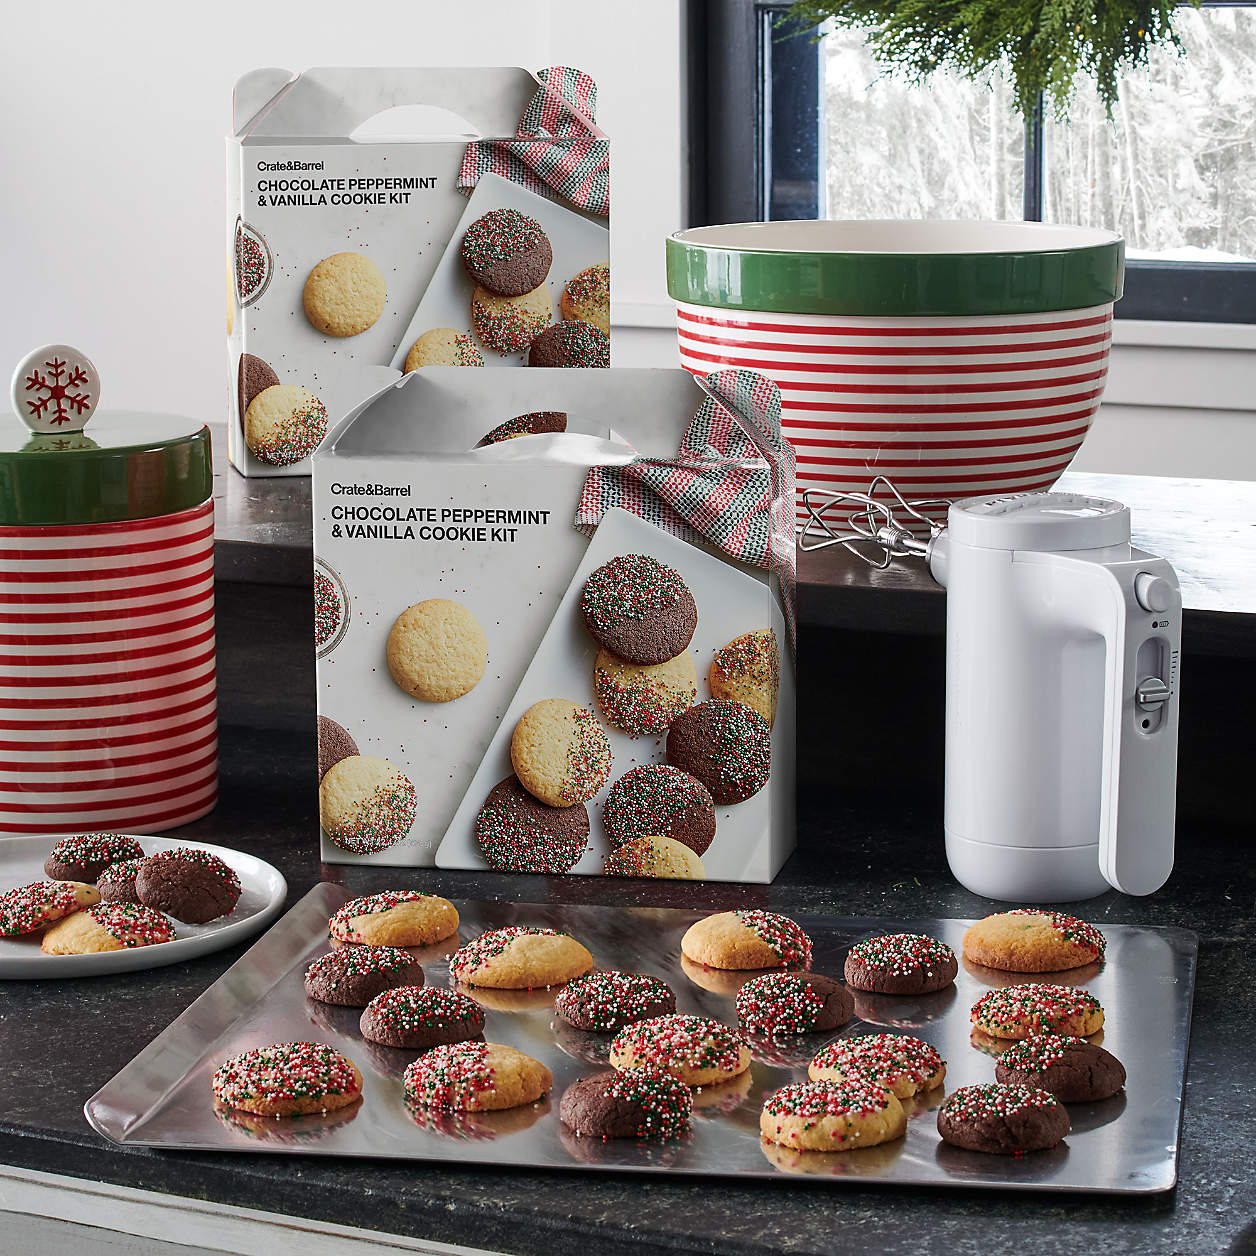 Chocolate Peppermint and Vanilla Cookie Exchange Kit - $16.95